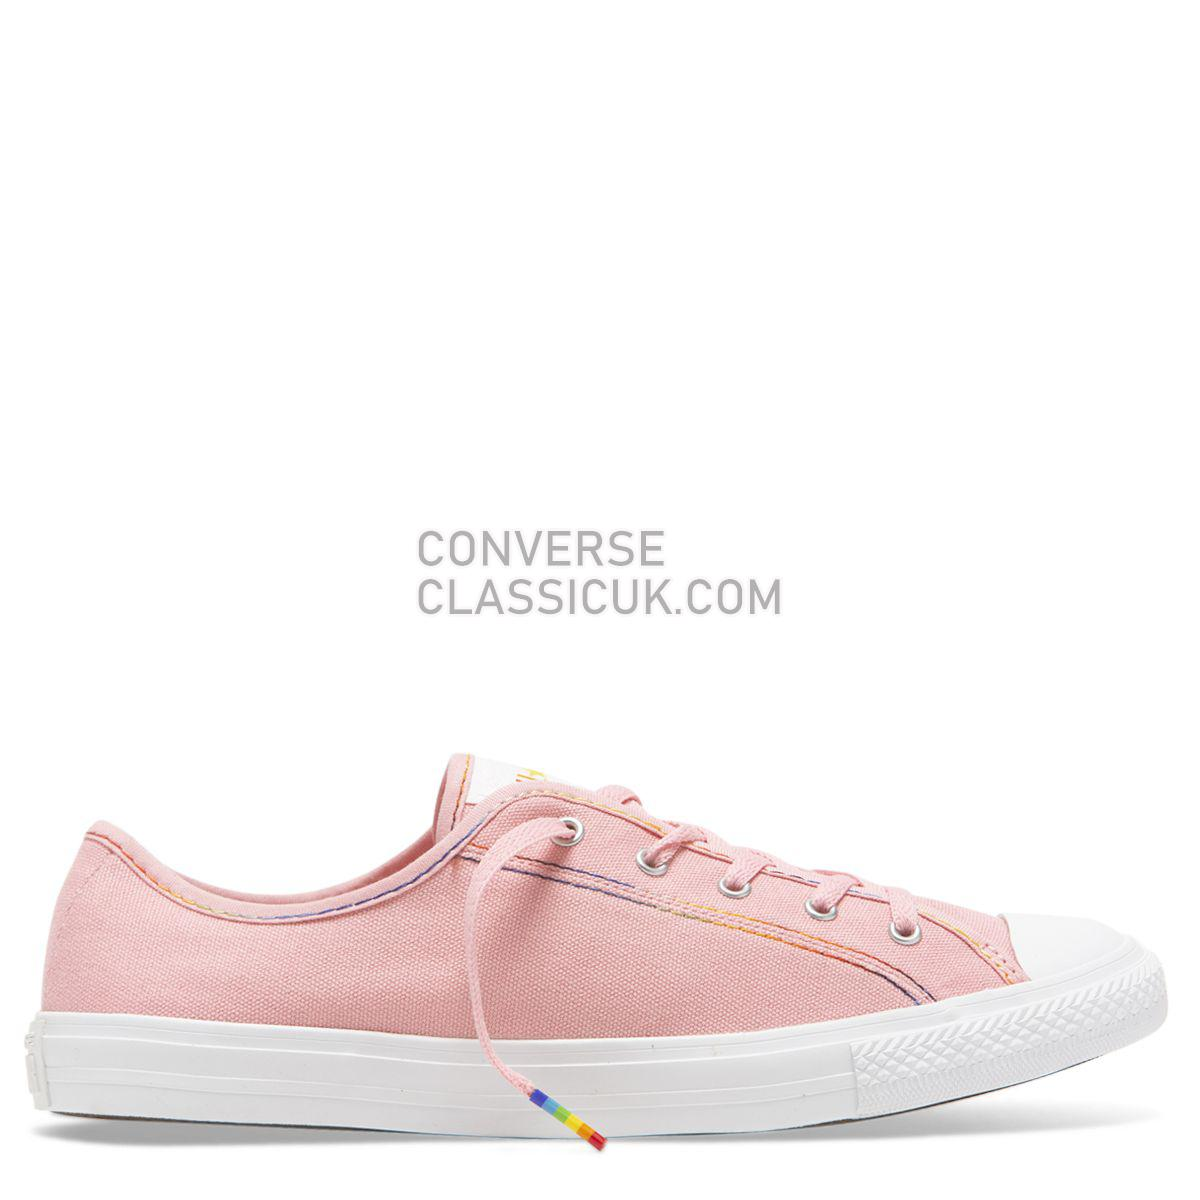 Converse Chuck Taylor All Star Dainty Rainbow Low Top Coastal Pink Womens 564980 Coastal Pink/Yellow/White Shoes